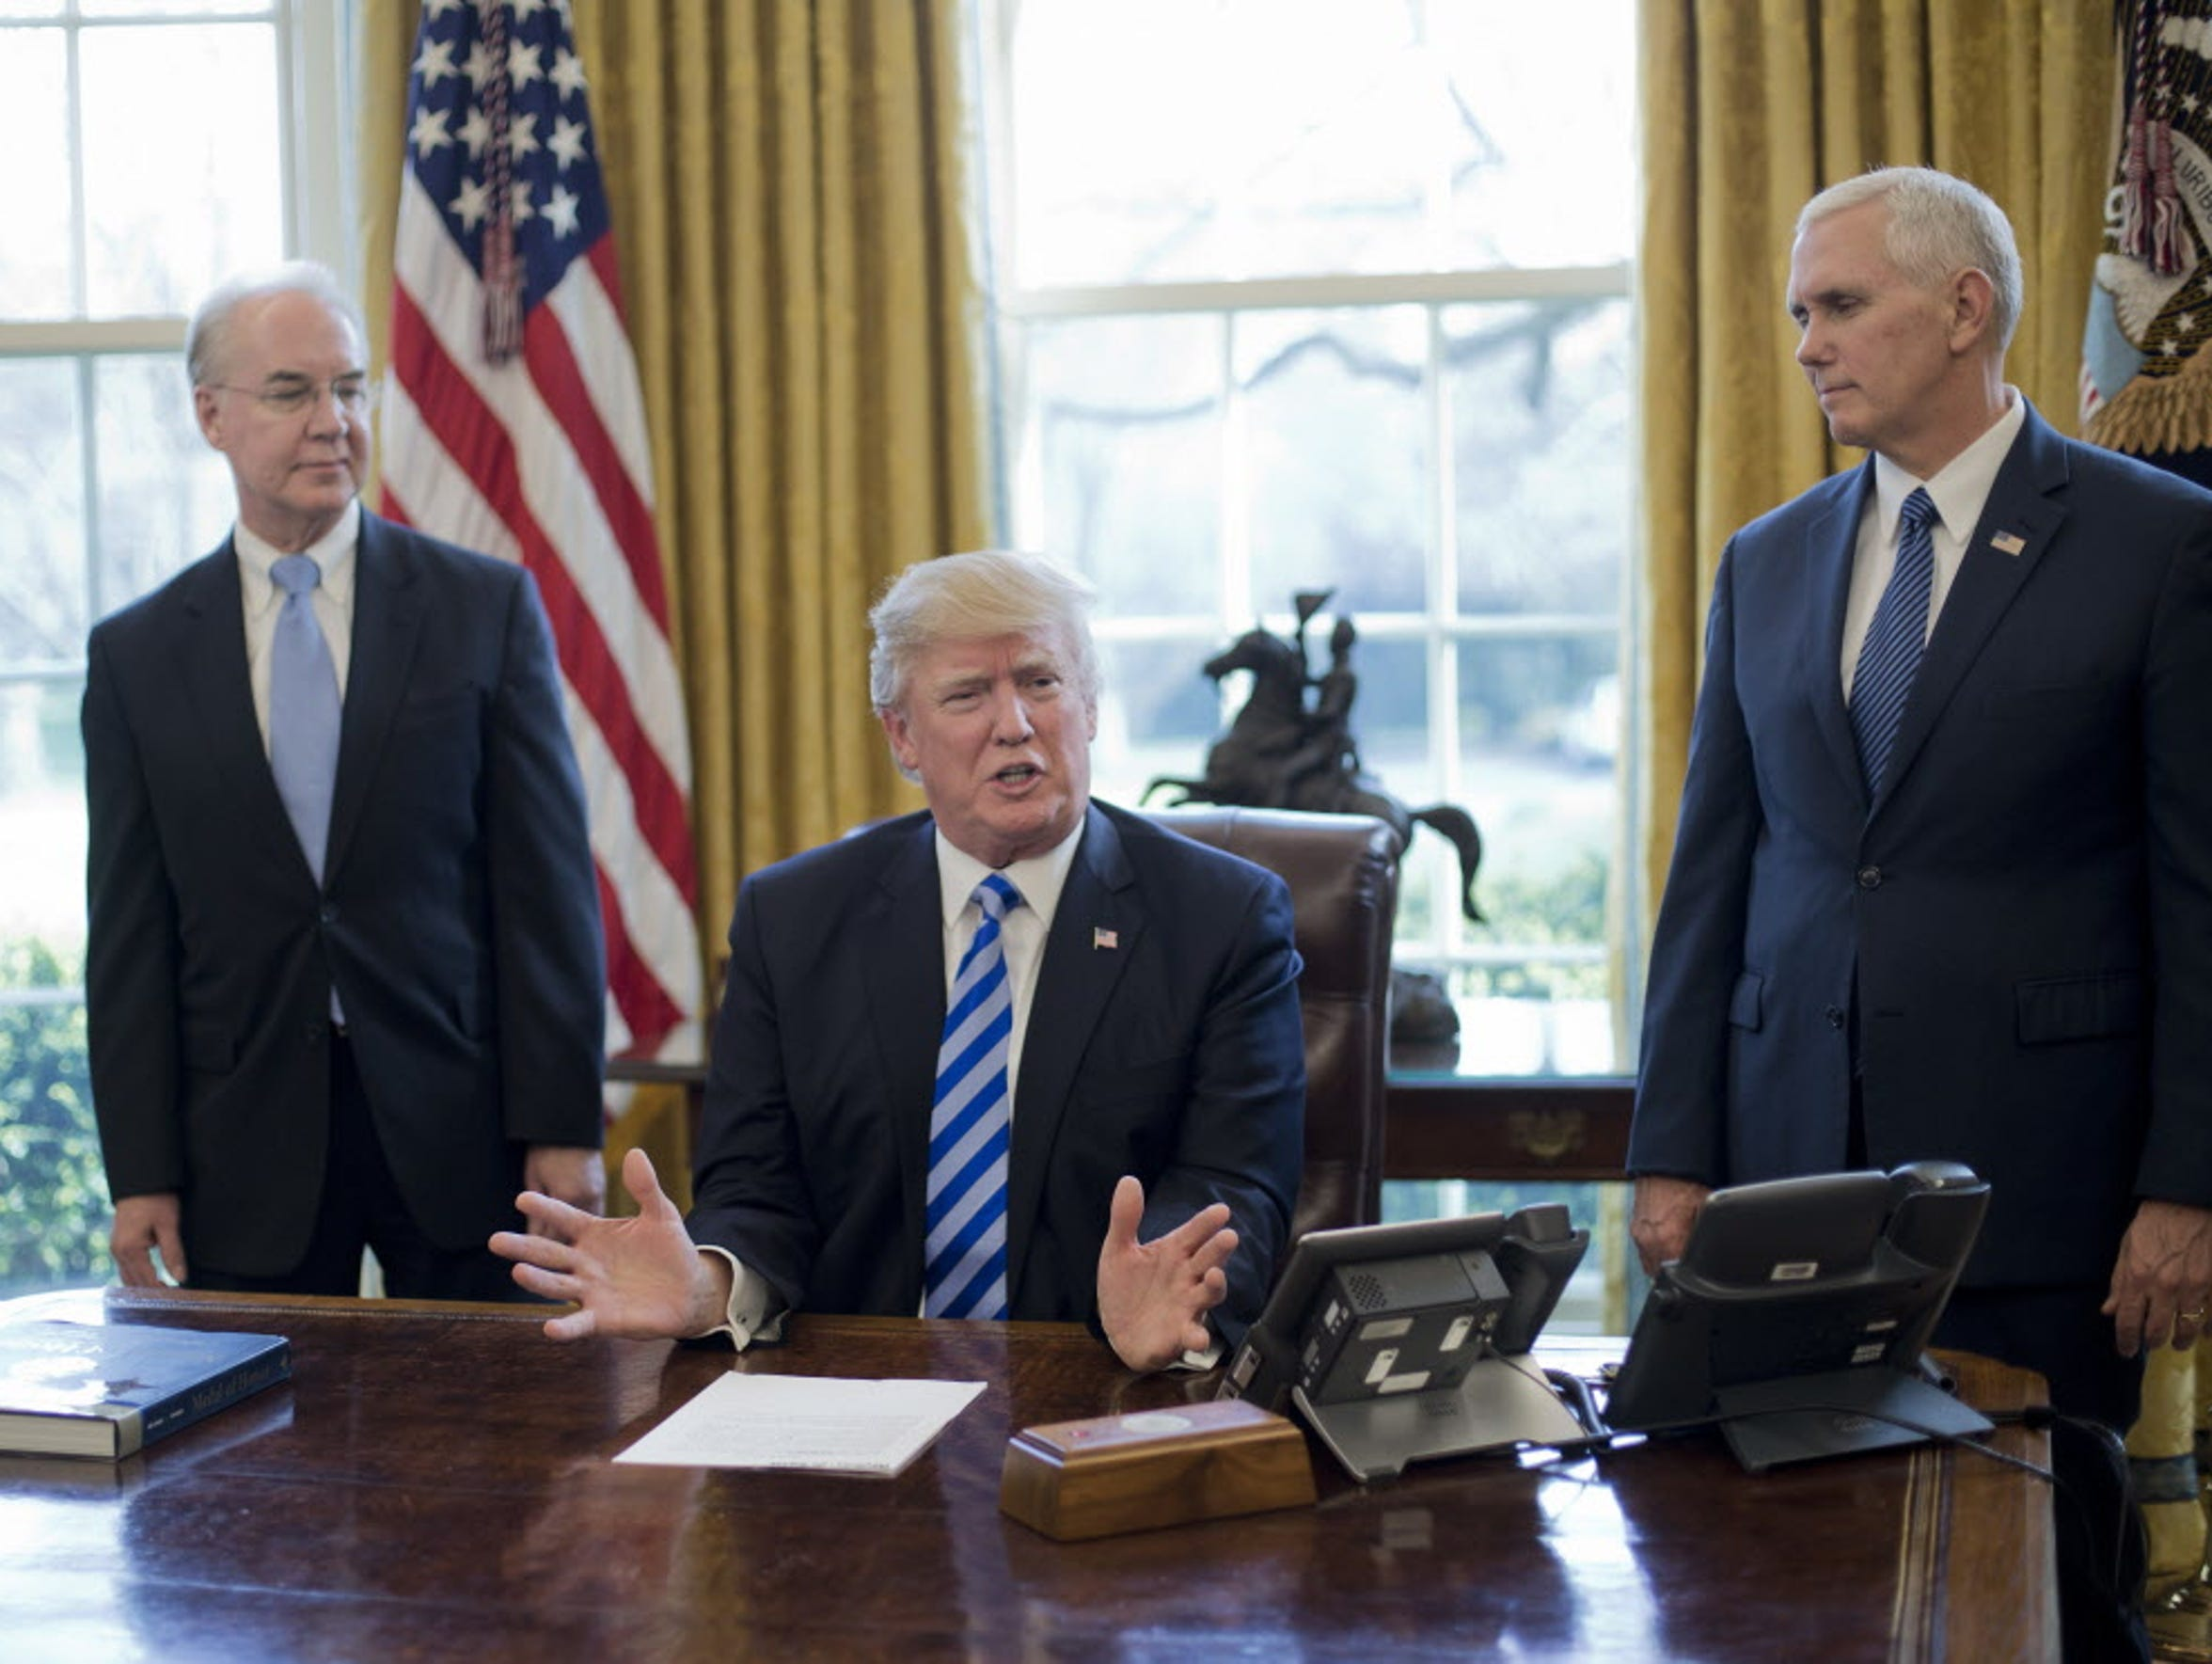 In this file photo, President Donald Trump, flanked